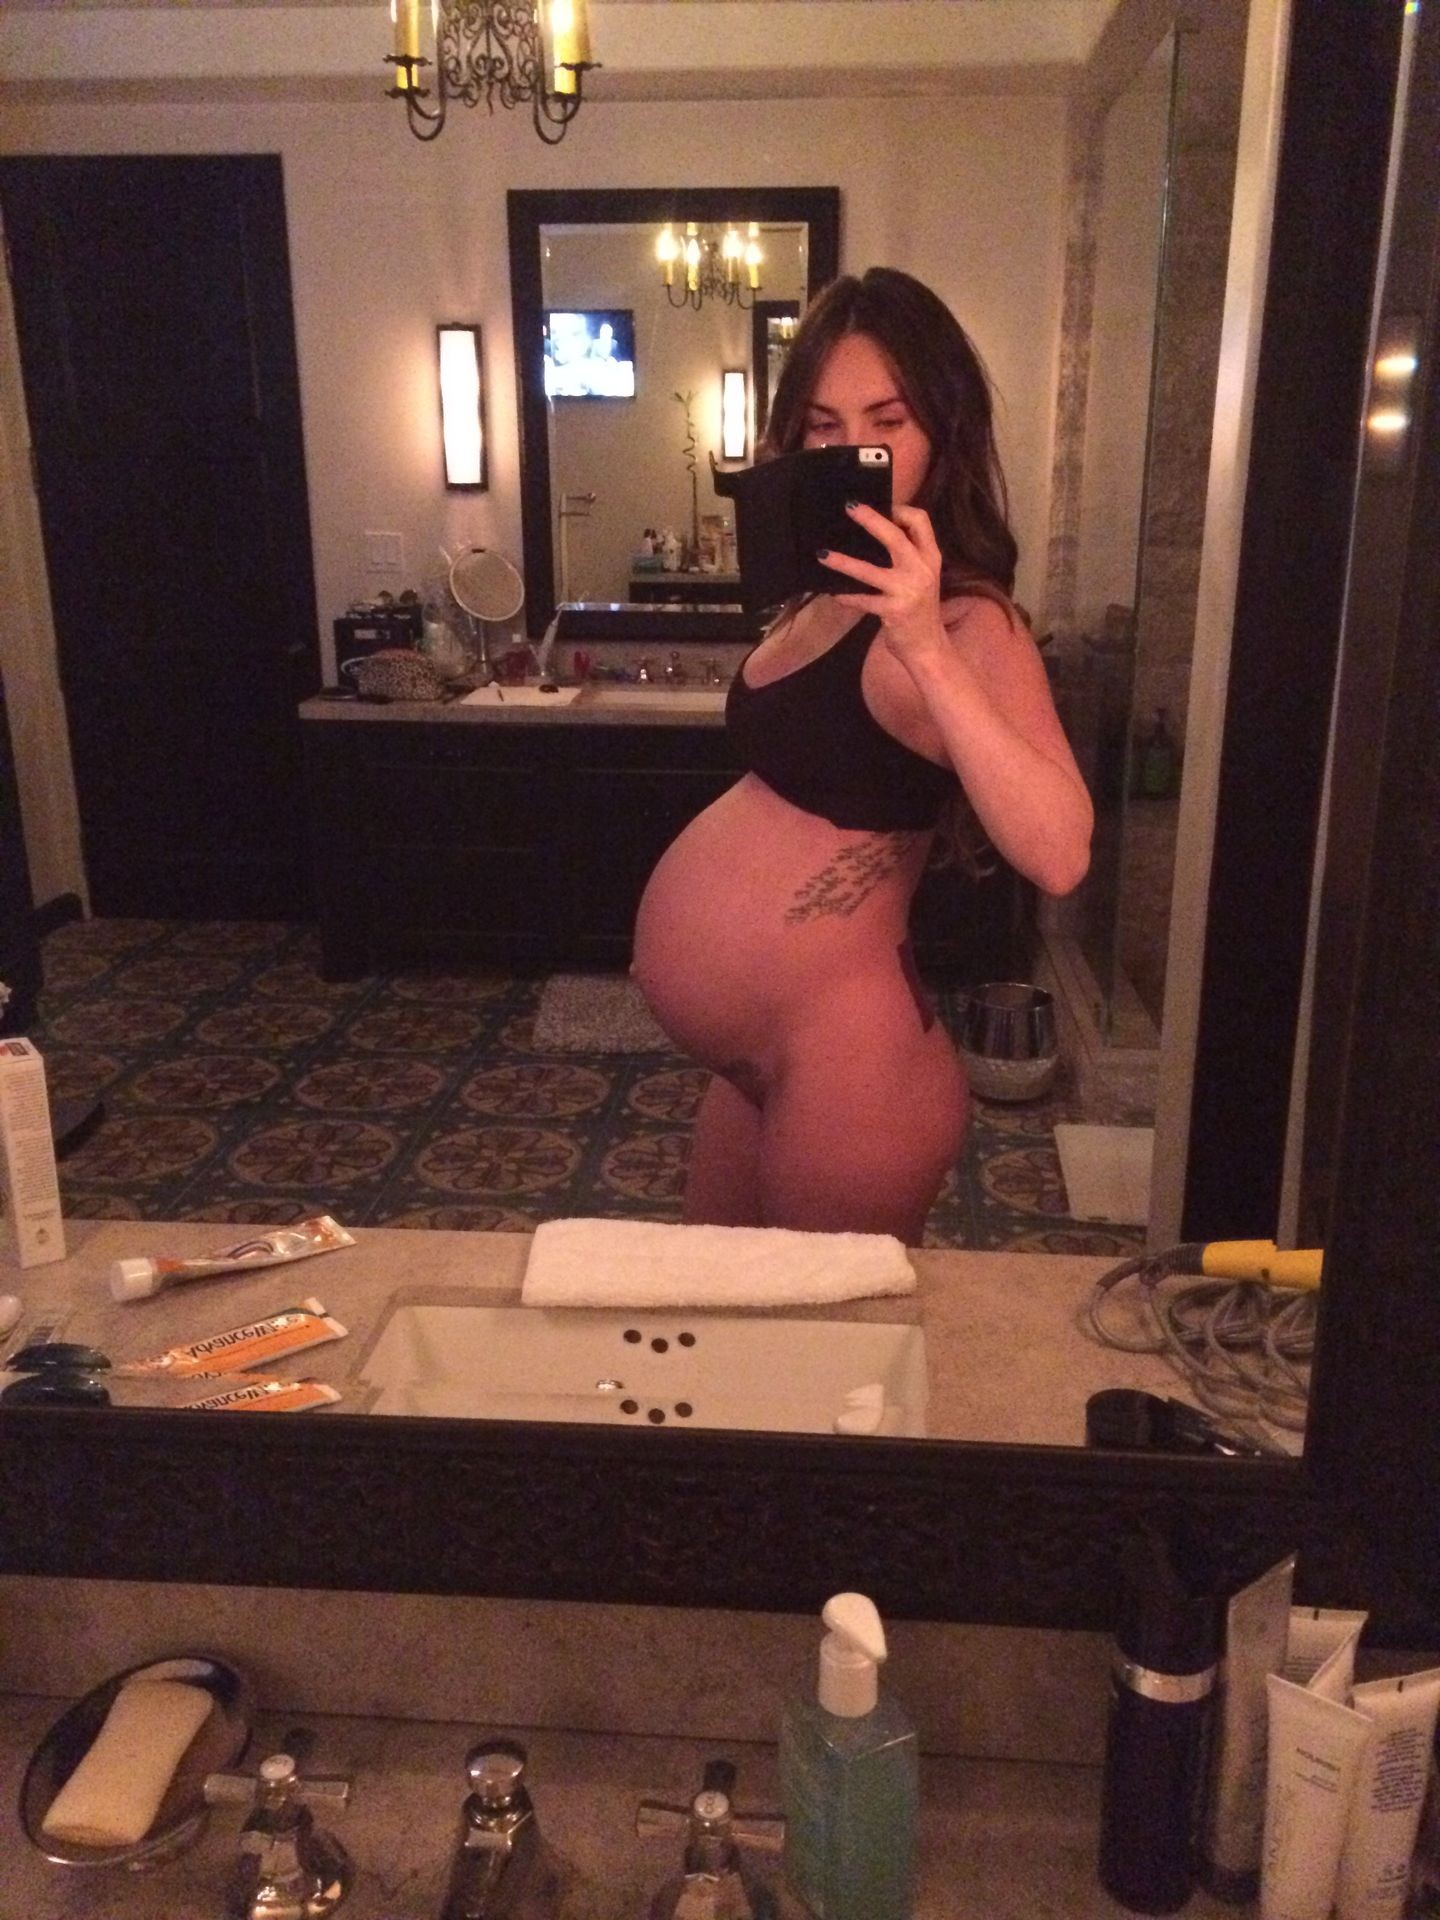 Megan Fox Nude Pictures Leaked, Pregnant